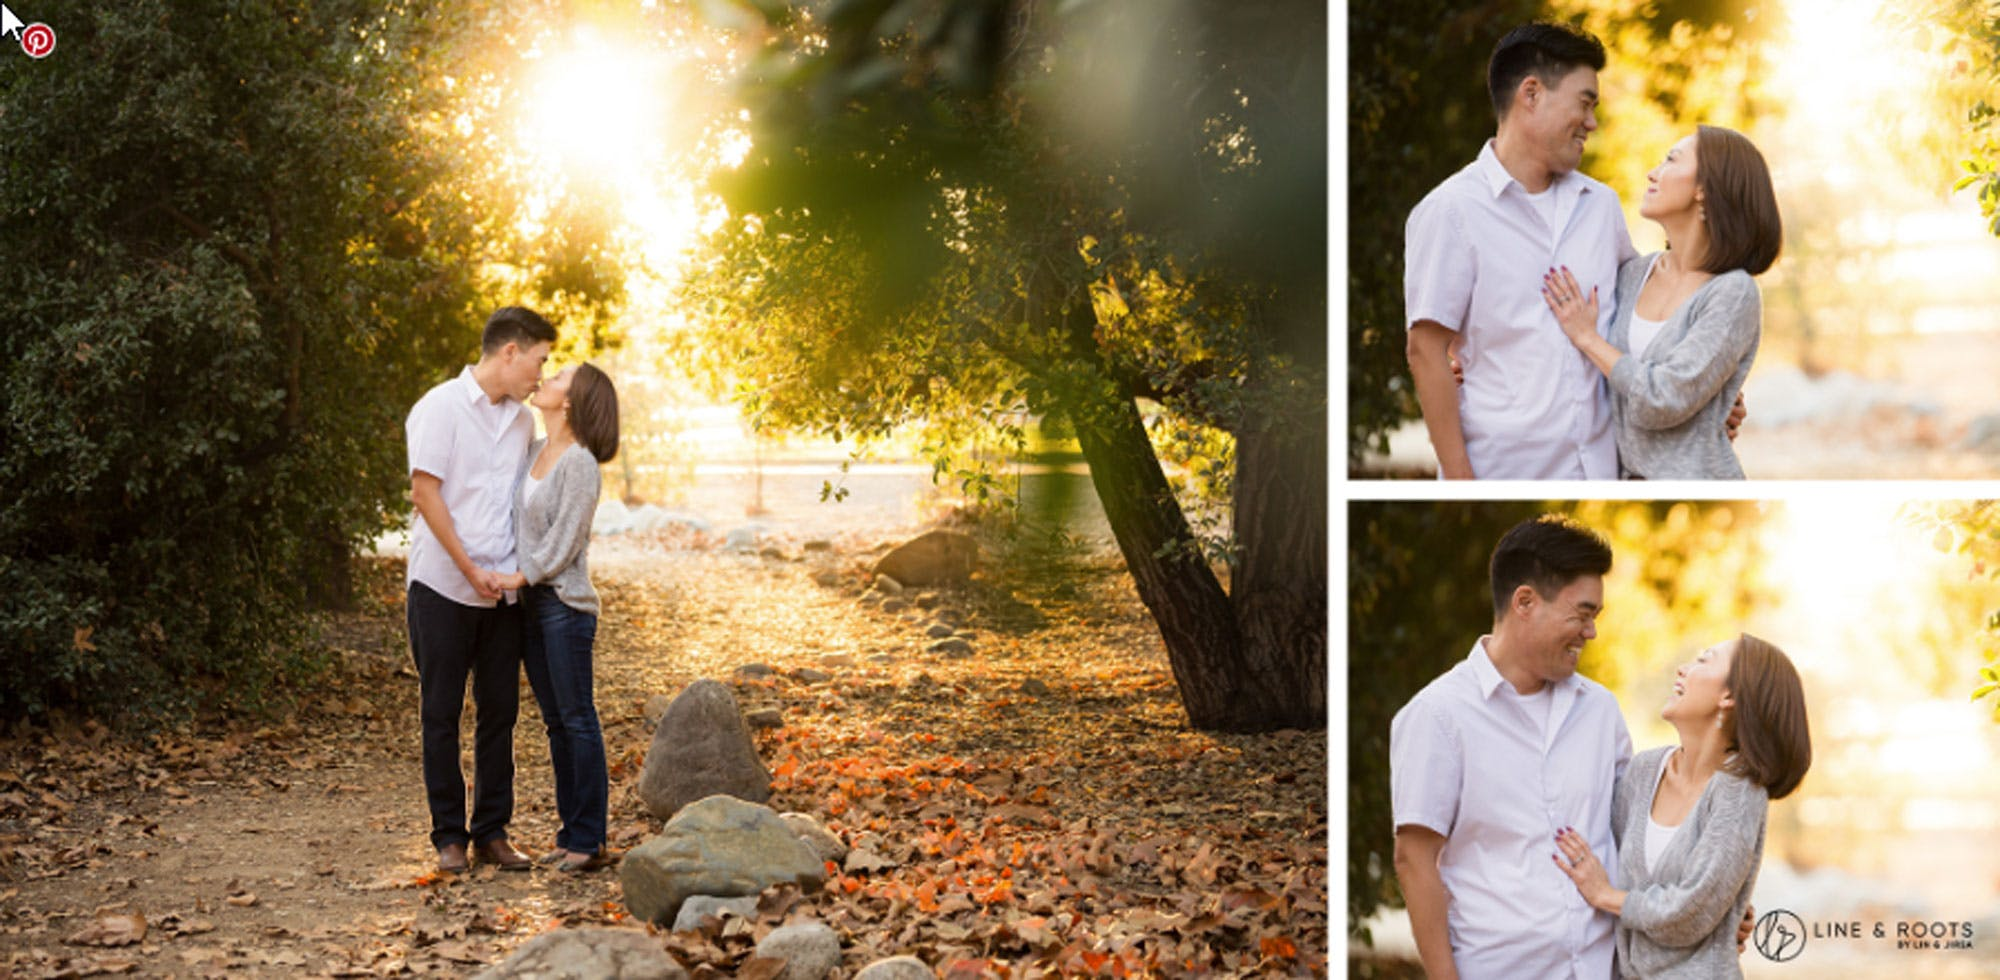 Use consistent lighting to tell a more cohesive story to increase your photography business profits